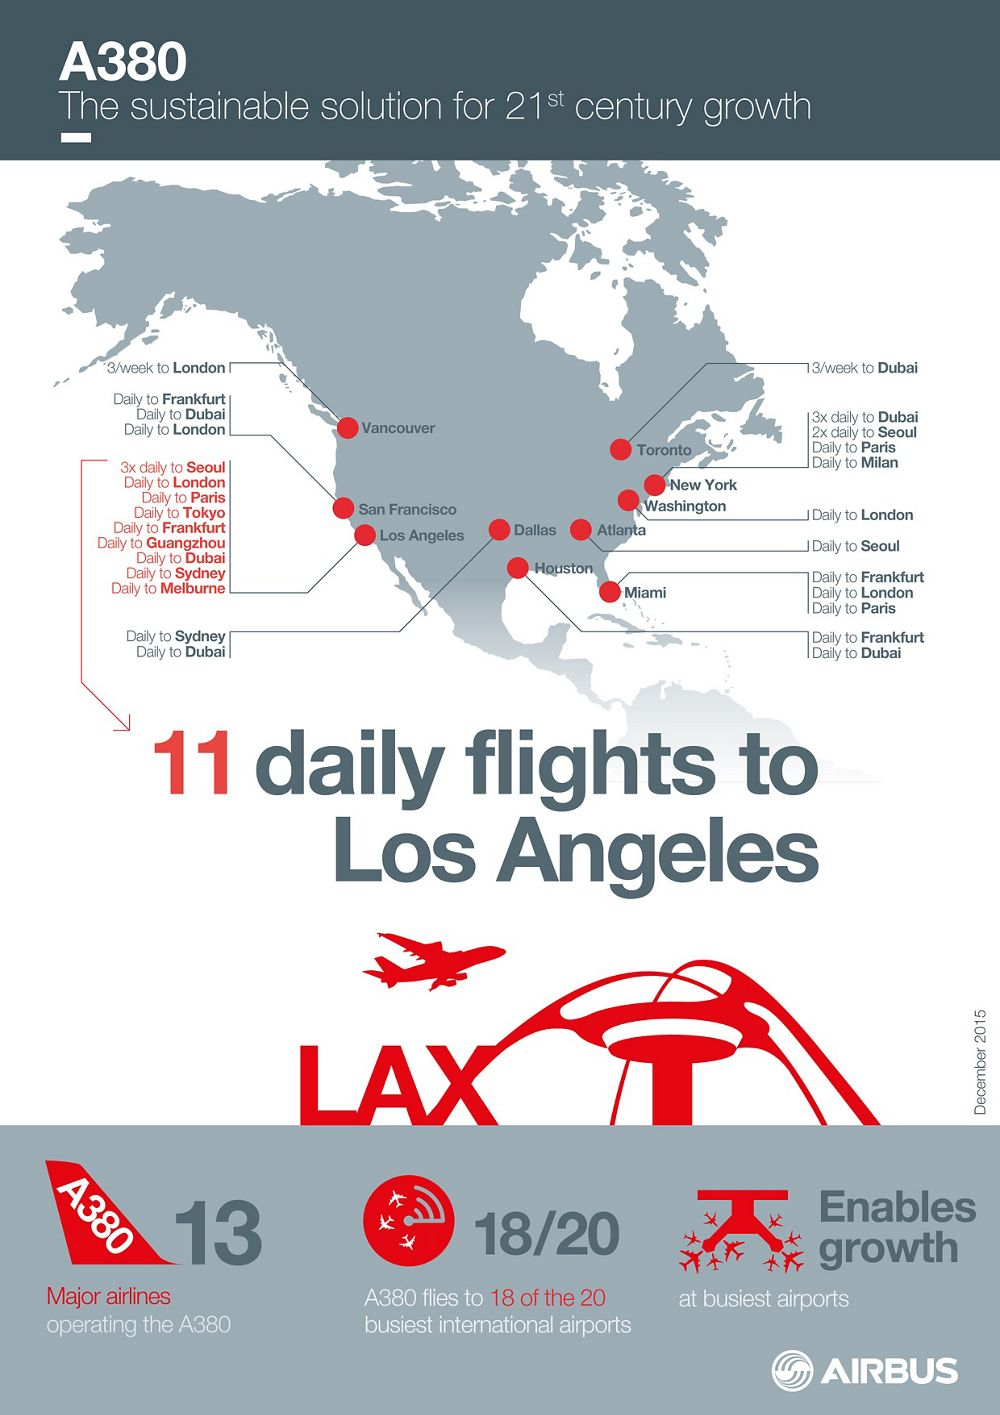 A380_Infographics_LAX, A380 Infographics 11 daily flights to LAX Dec 2015